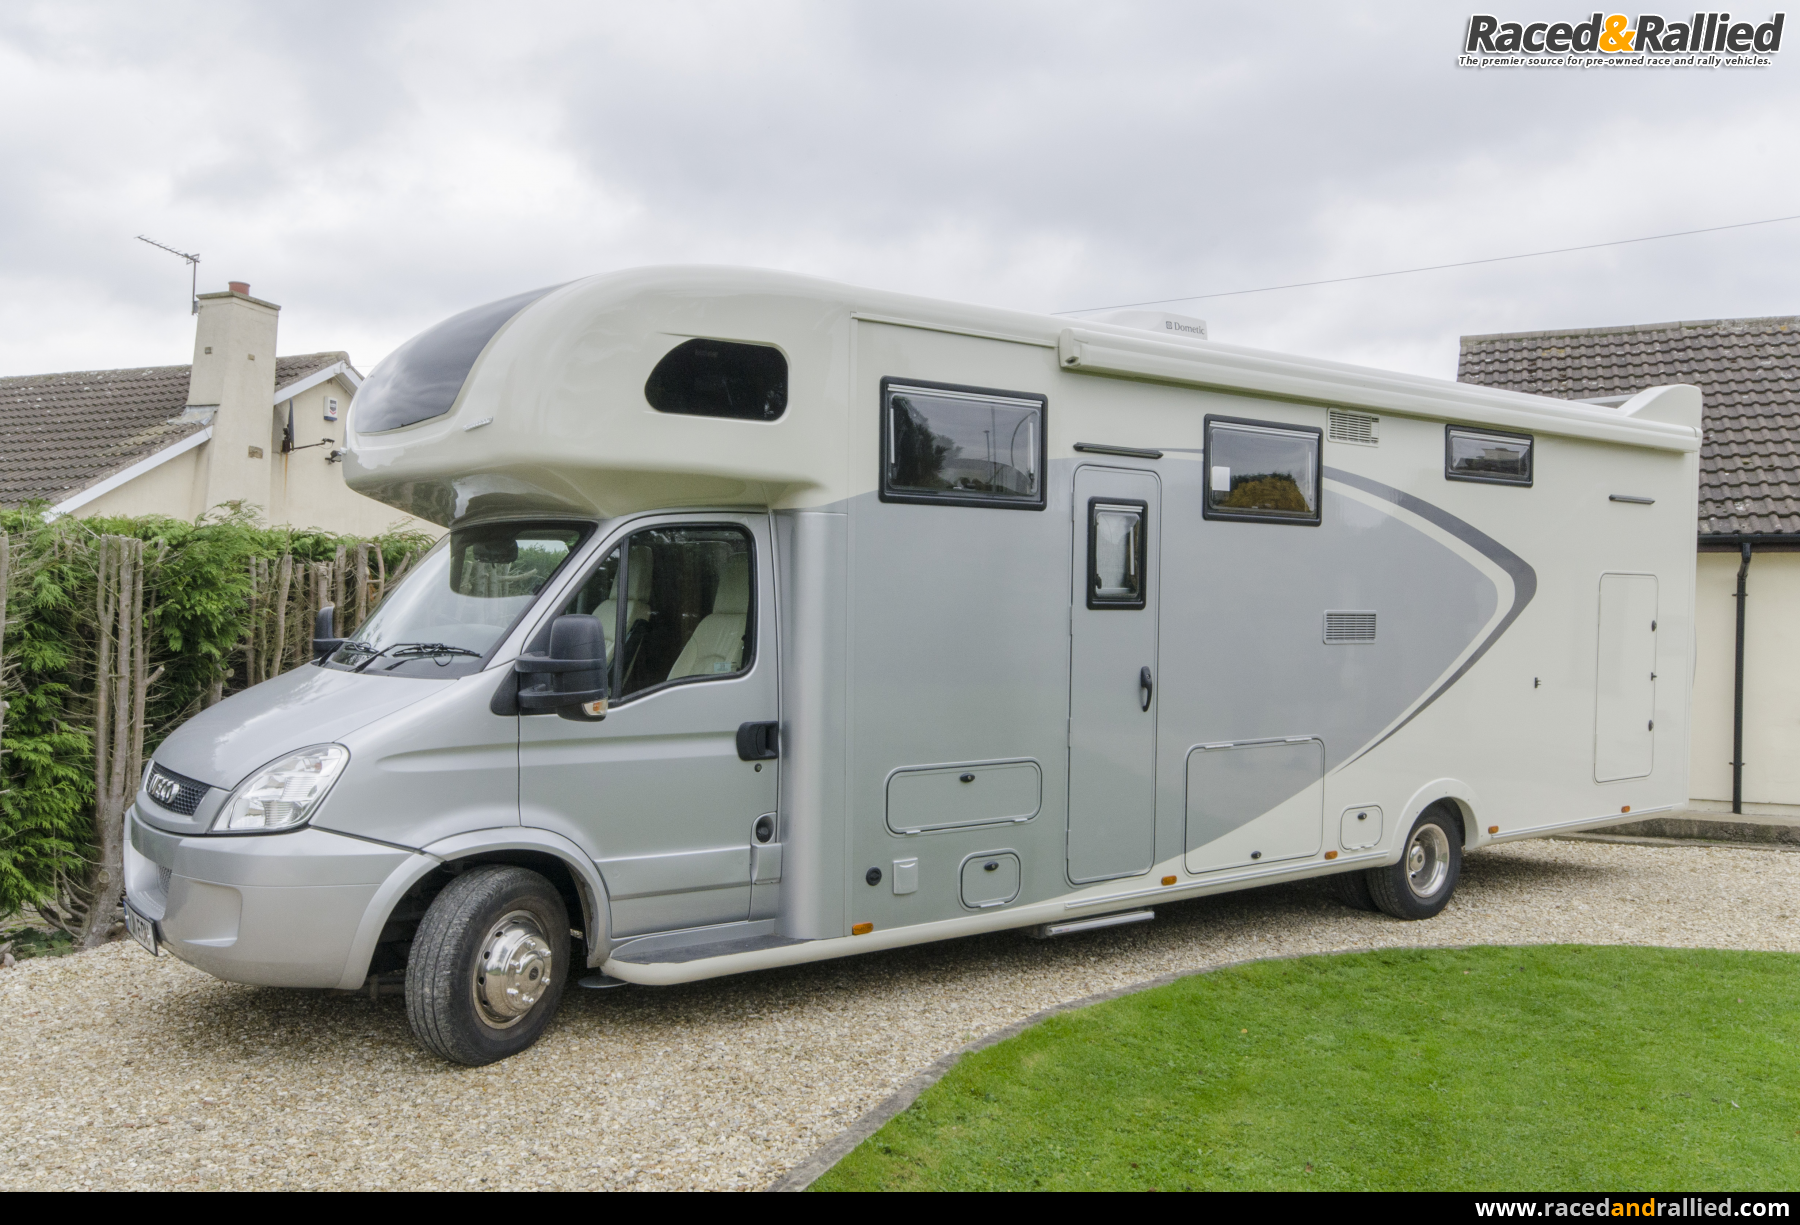 2012 Iveco Daily Bespoke Racetruck Motorhome Trailers